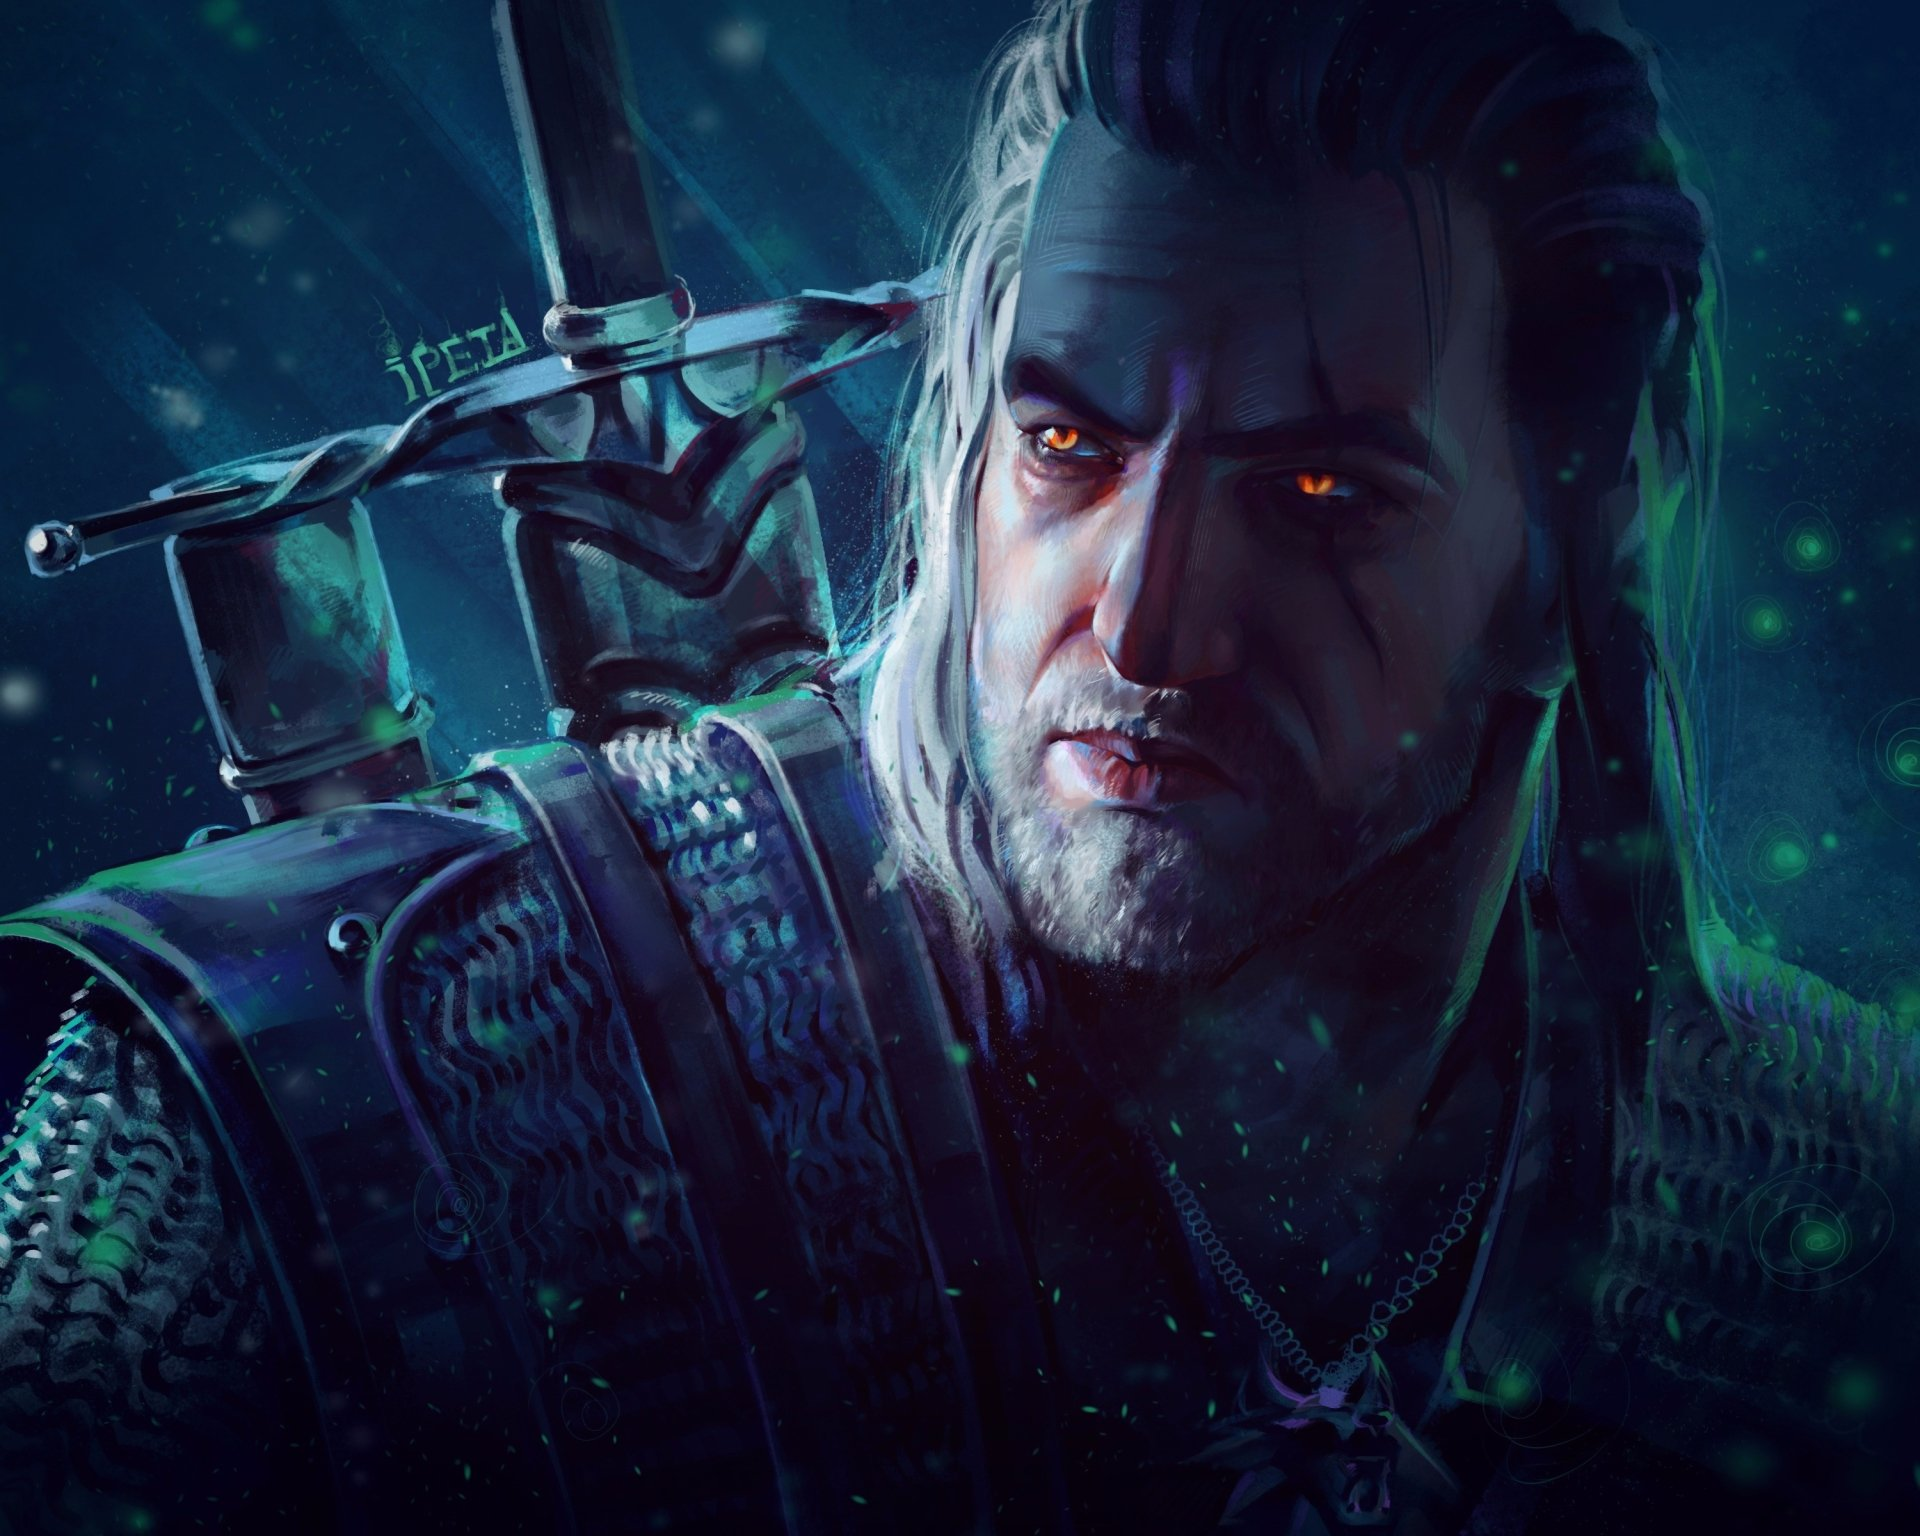 Witcher 3 Wallpaper Geralt 2587248 Hd Wallpaper Backgrounds